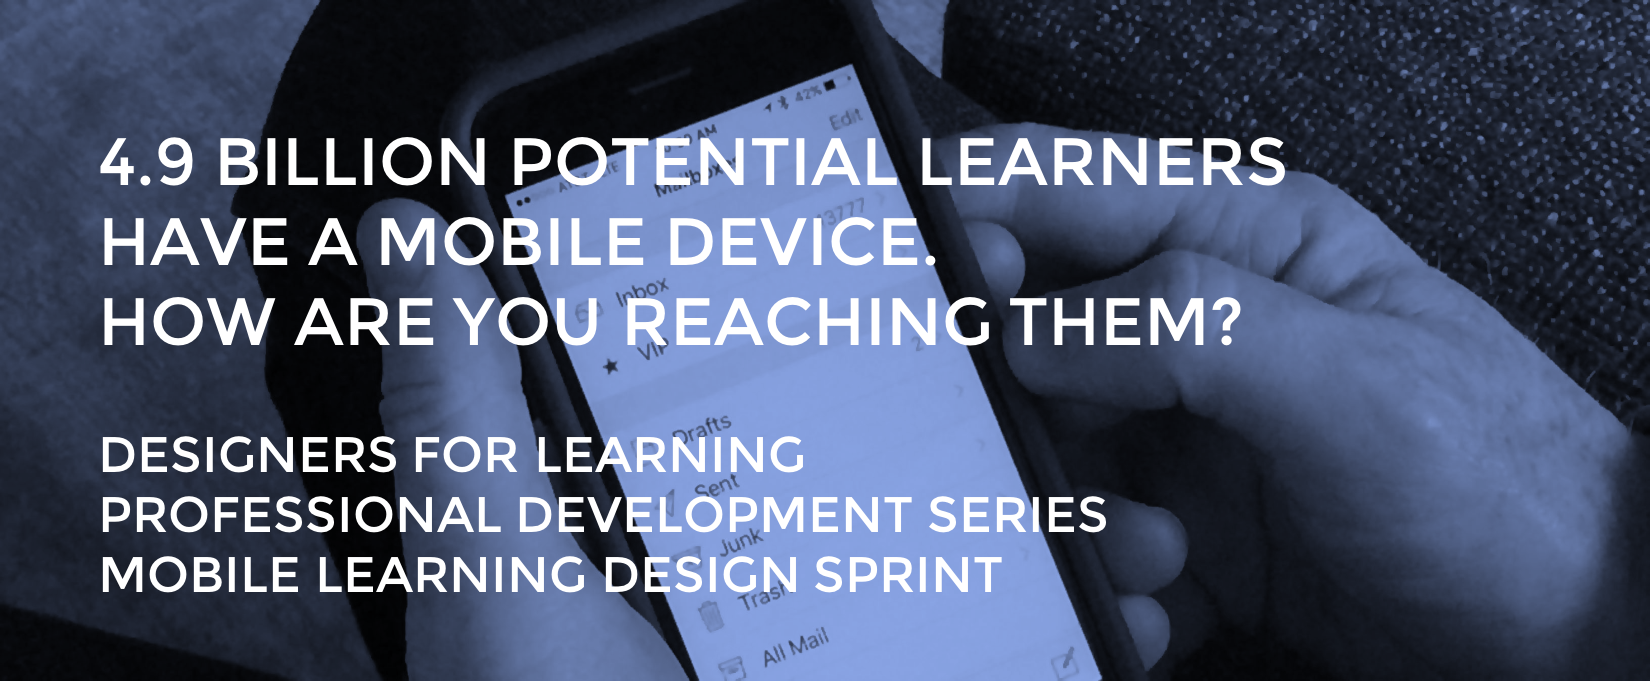 How are your reaching mobile learners?